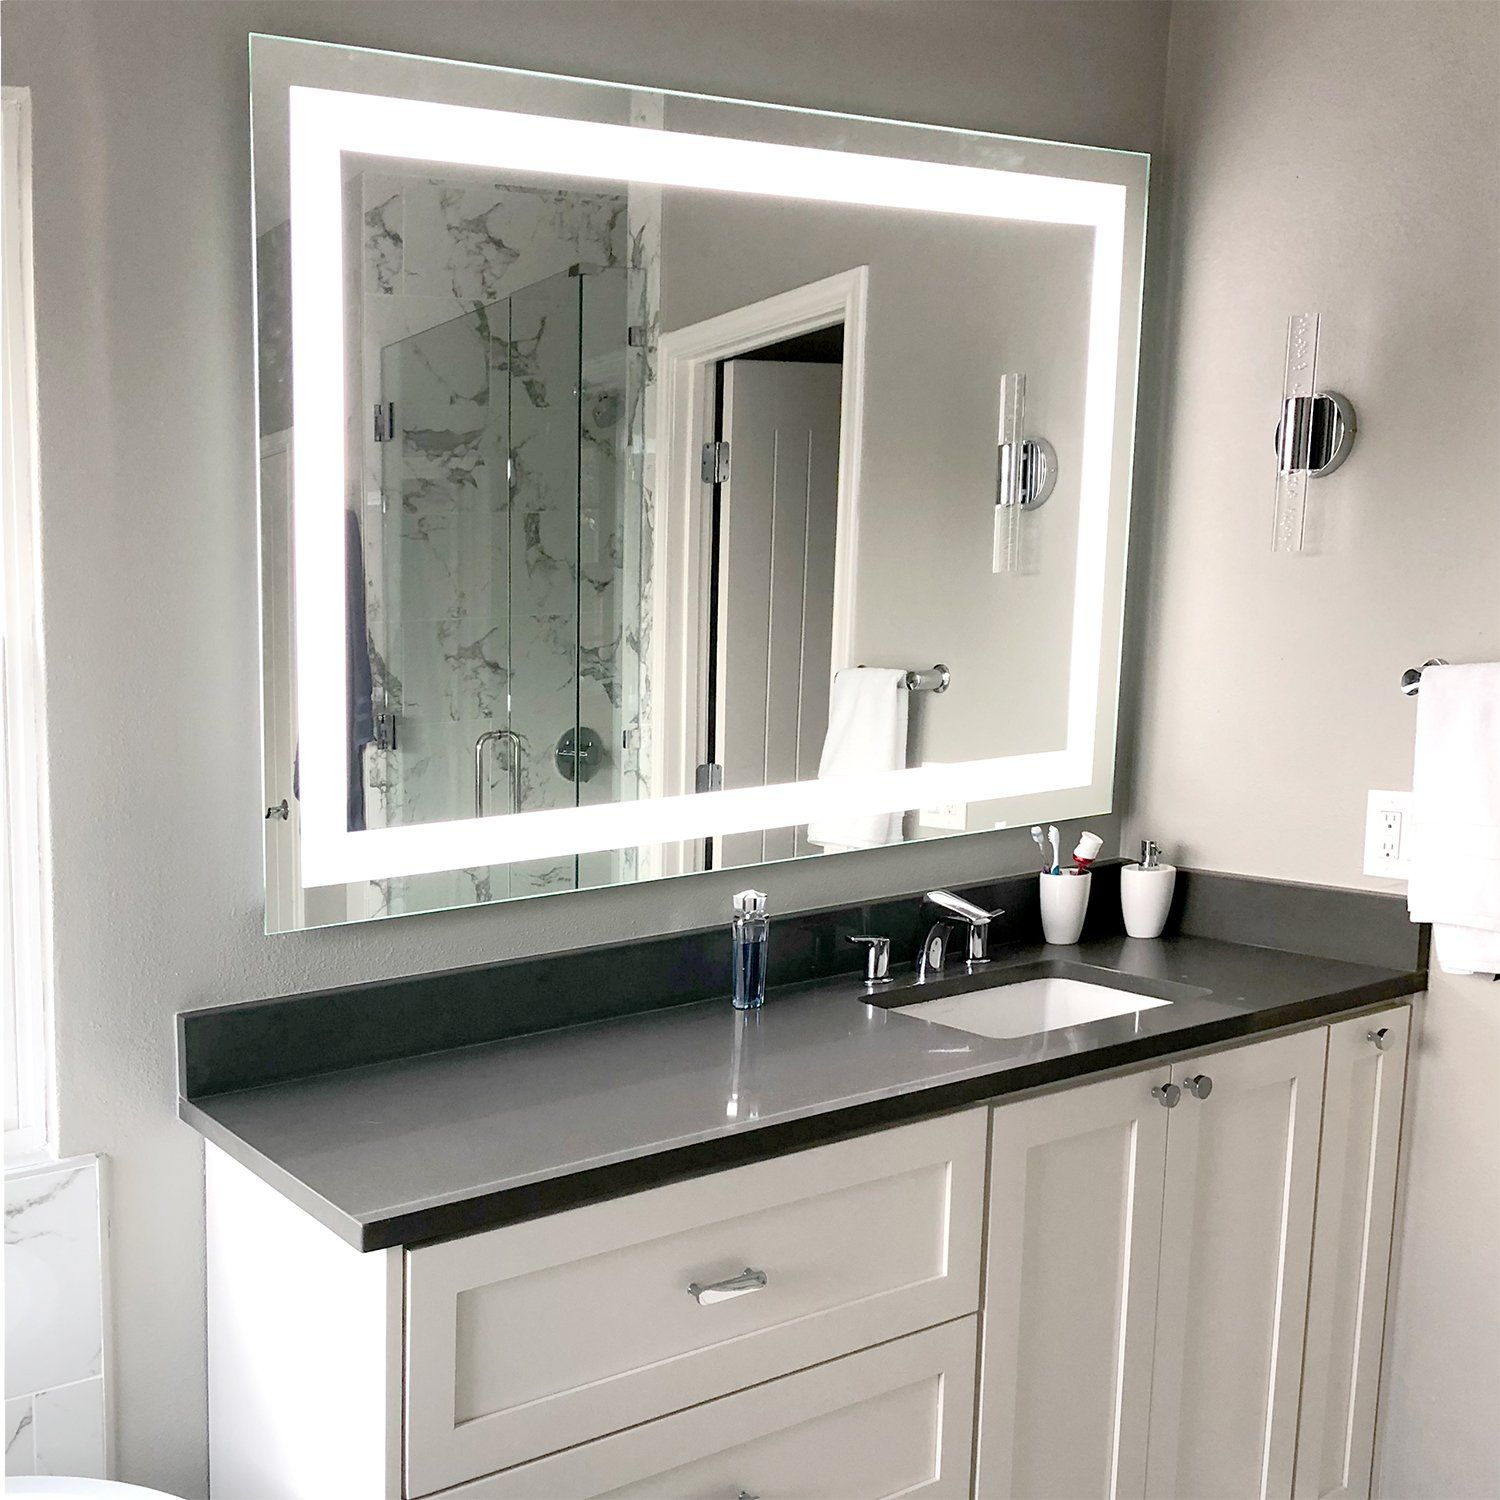 Front Lighted Led Bathroom Vanity Mirror 40 Bathroom Vanity Mirror Bathroom Design Bathroom Interior